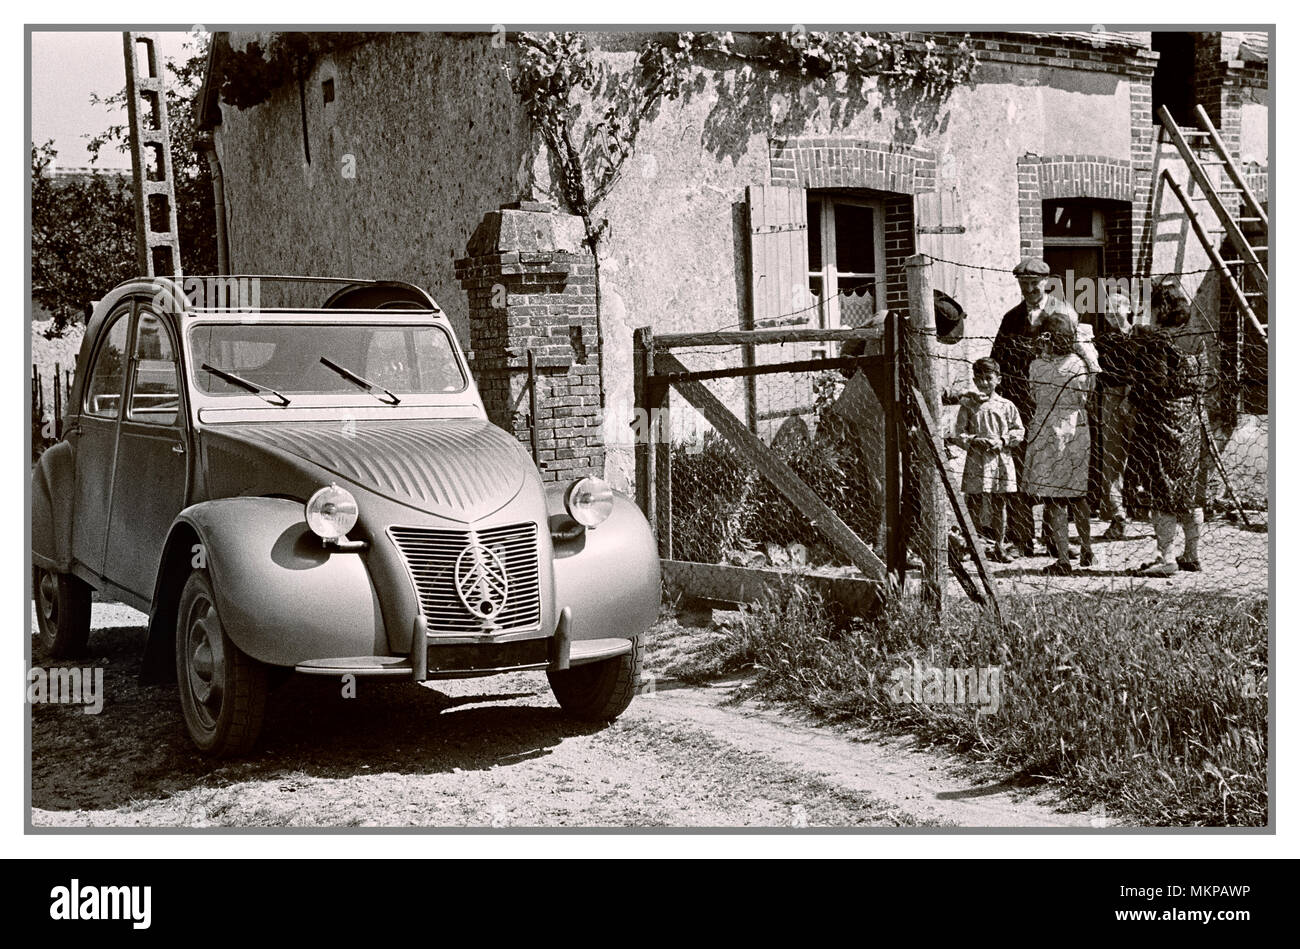 VINTAGE FRENCH AUTOMOBILE 1950's Citroën 2CV deux chevaux 1959 typical notable family French car in French rural surroundings for French press advertising - Stock Image